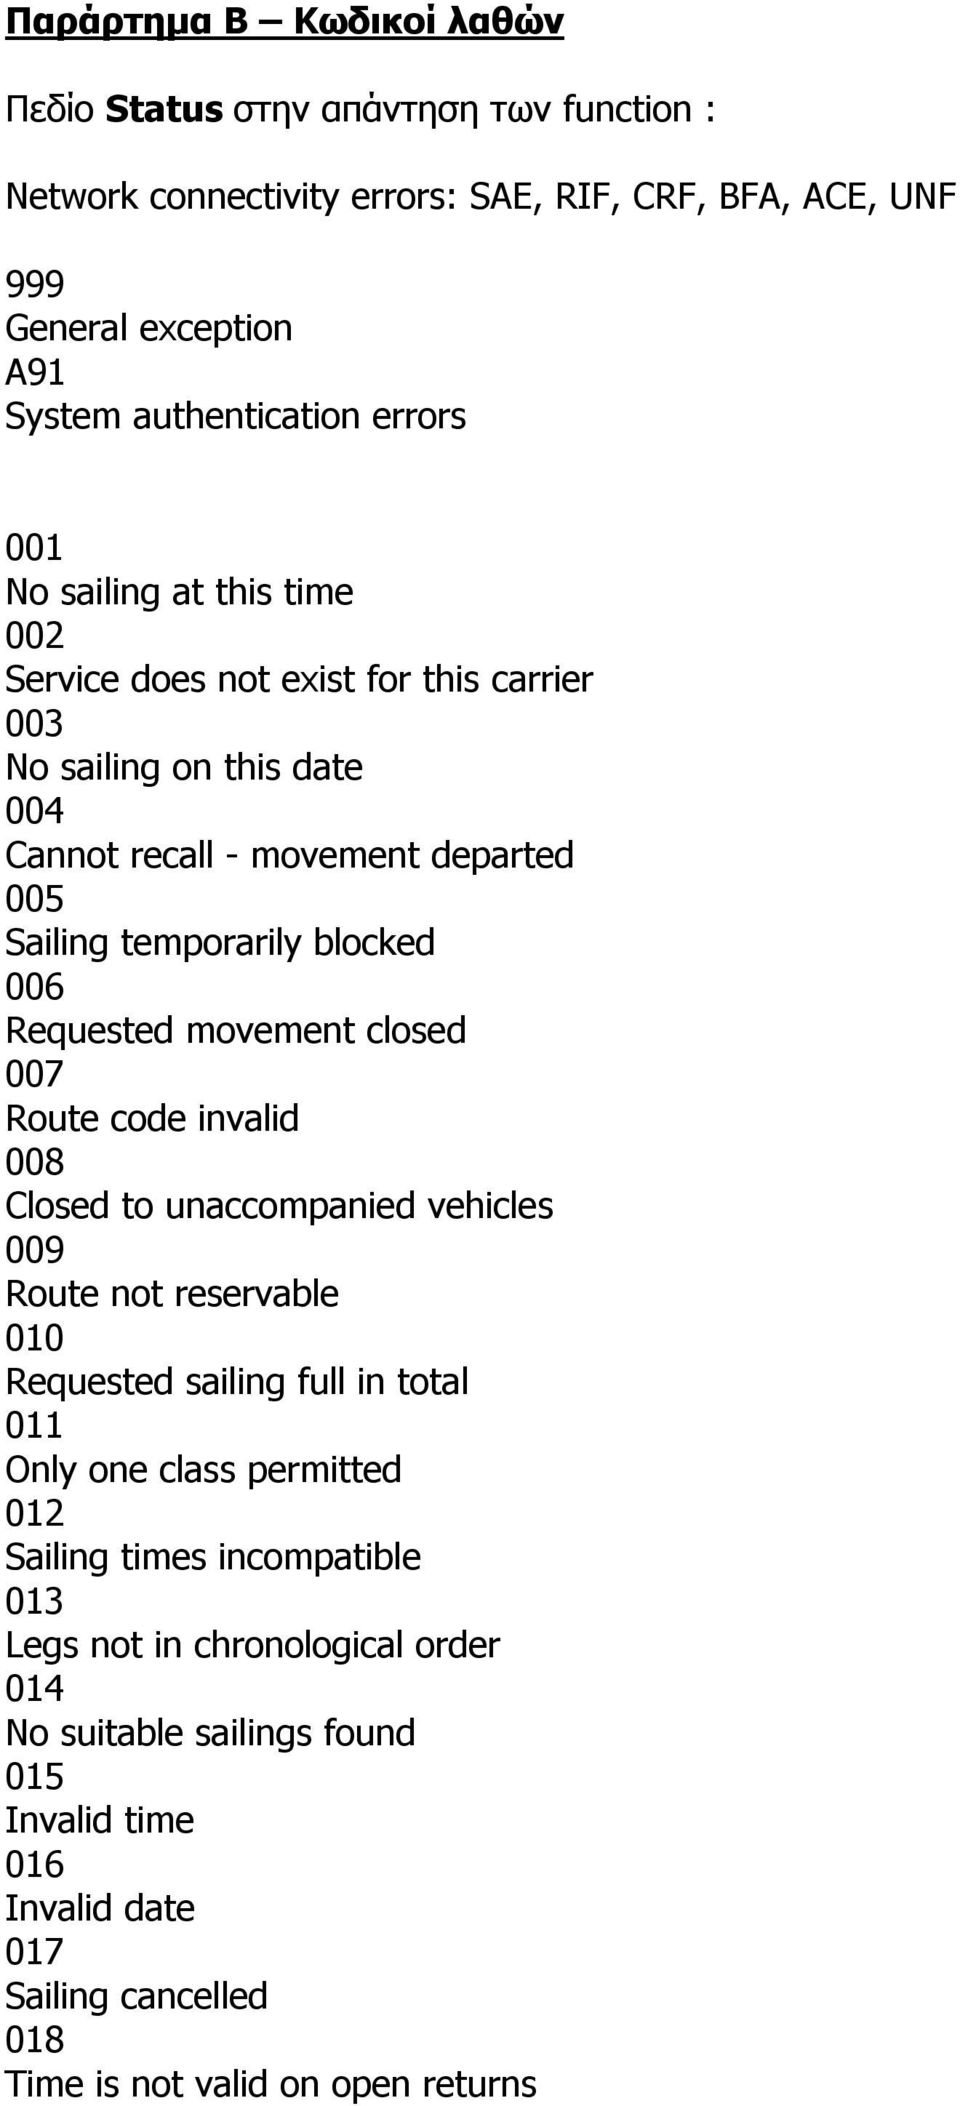 Requested movement closed 007 Route code invalid 008 Closed to unaccompanied vehicles 009 Route not reservable 010 Requested sailing full in total 011 Only one class permitted 012